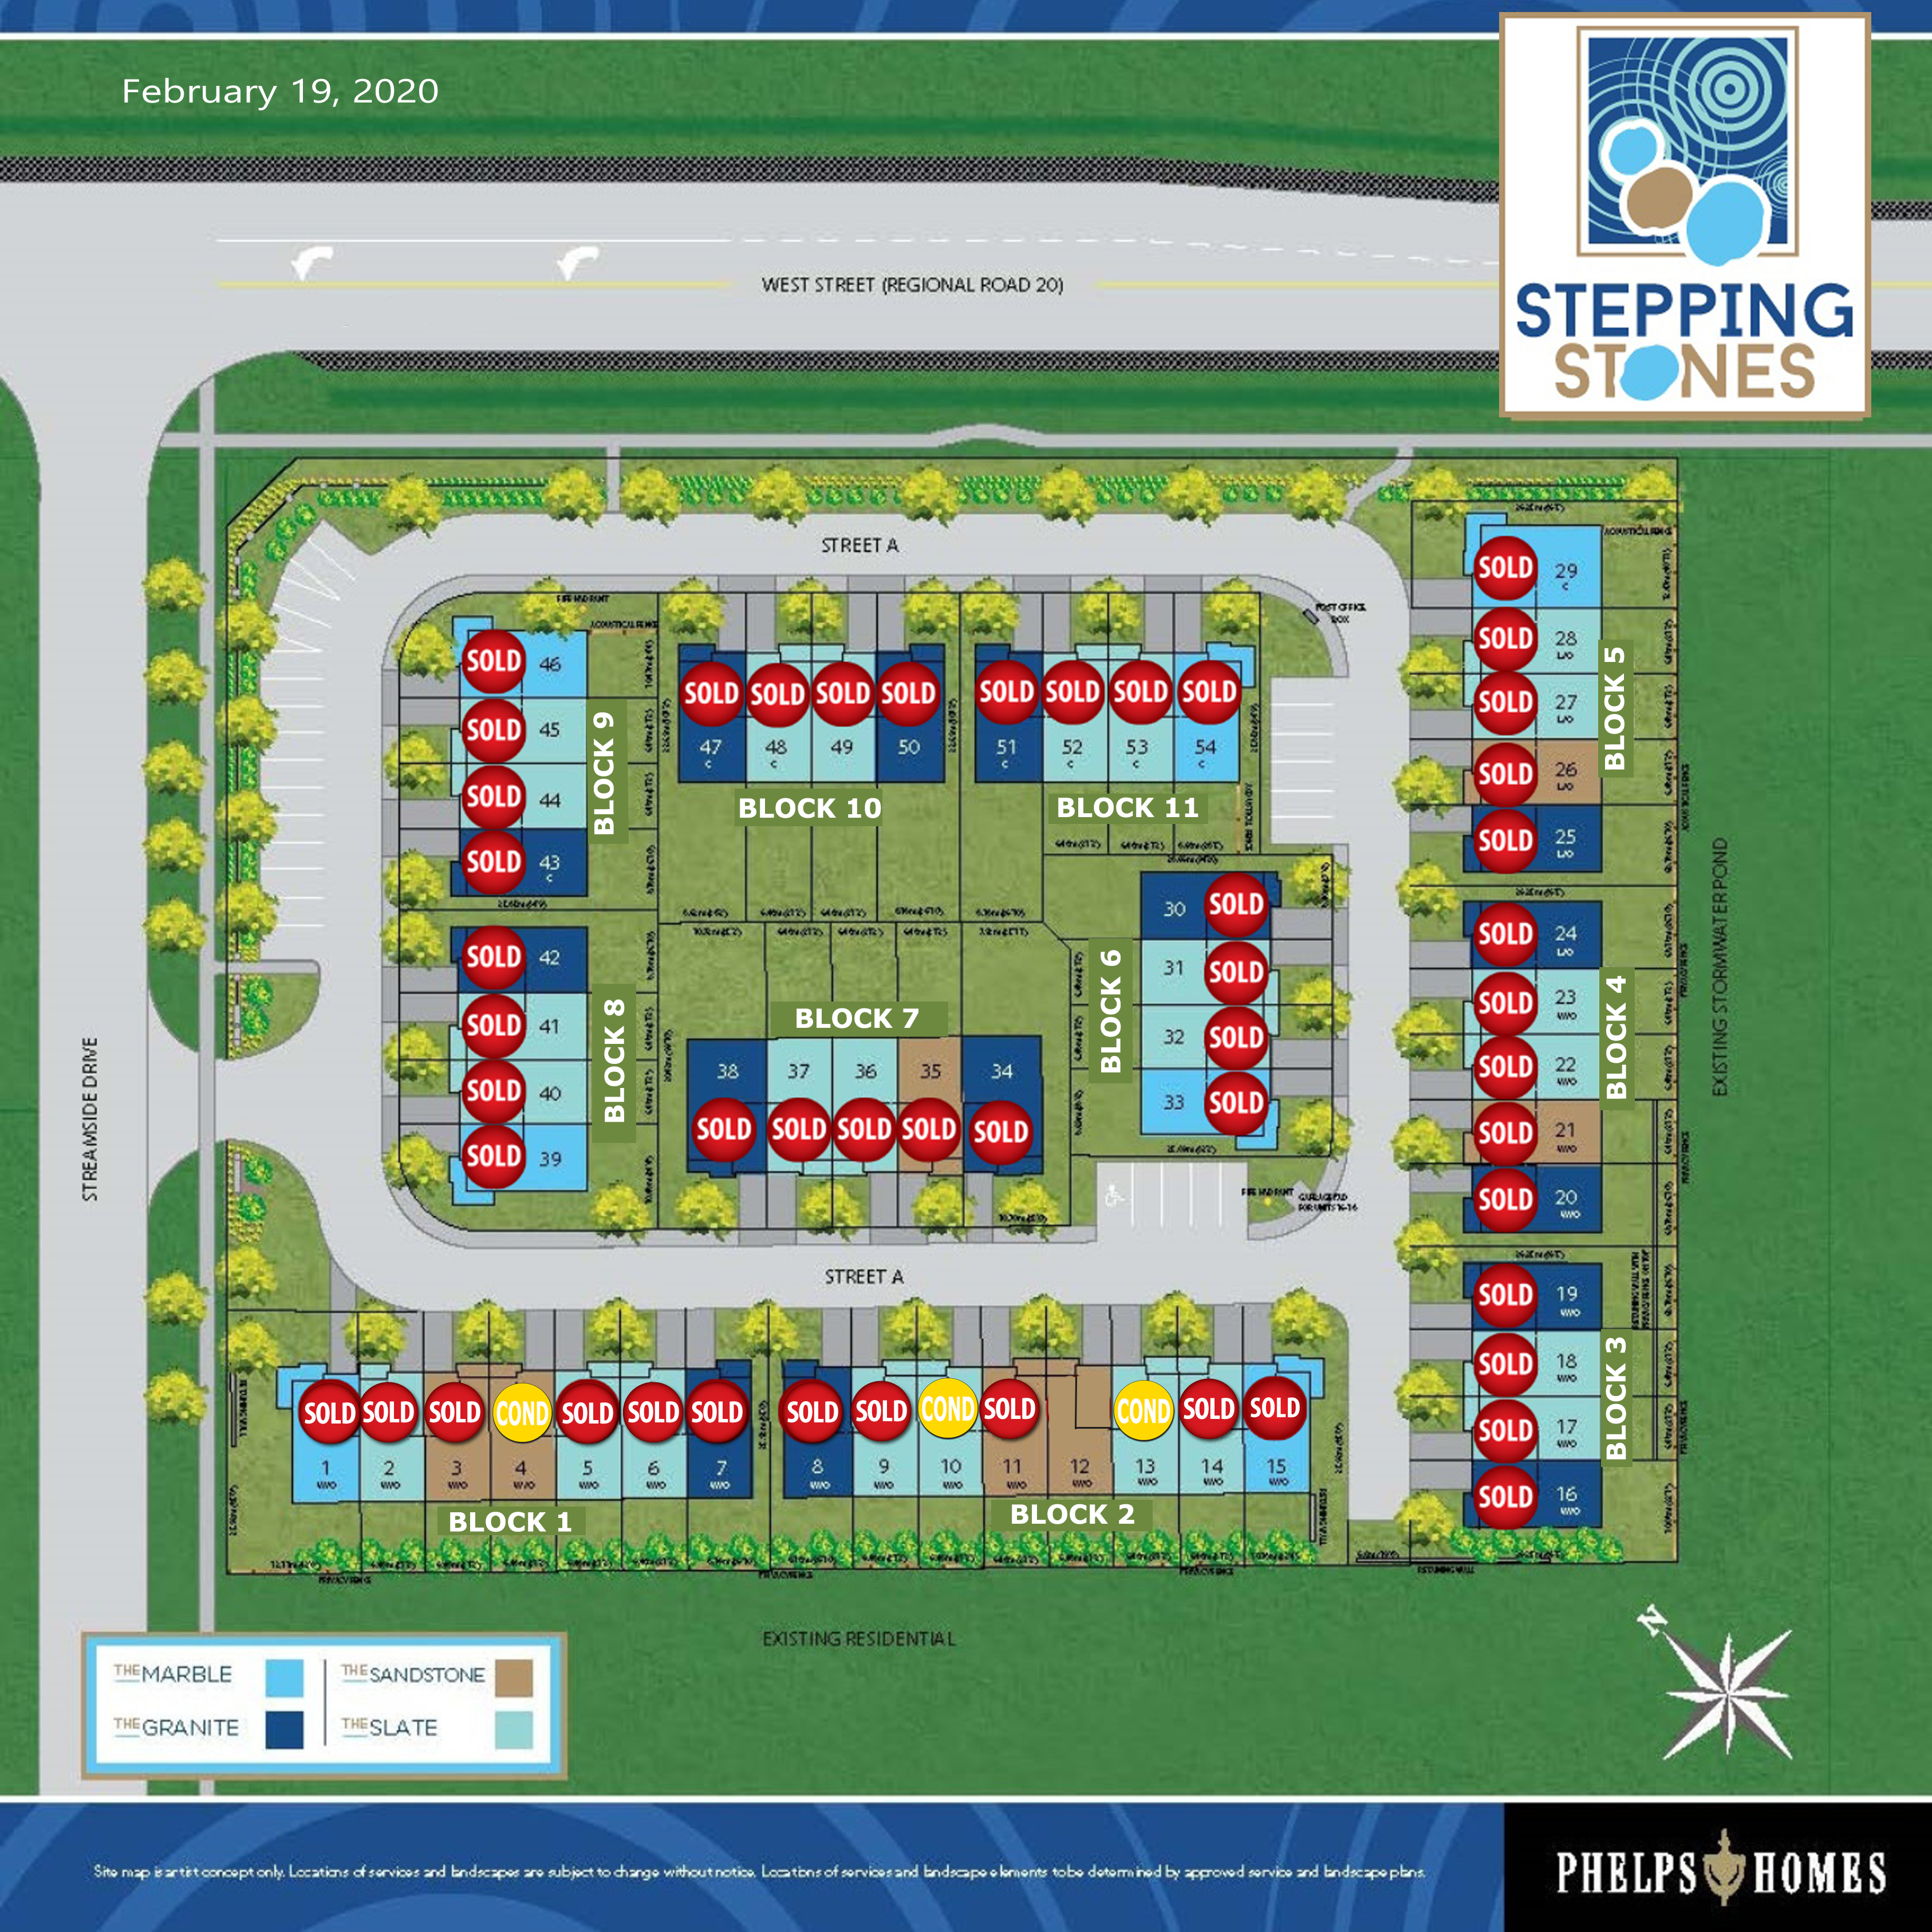 Stepping Stones Site Plan - 02.19